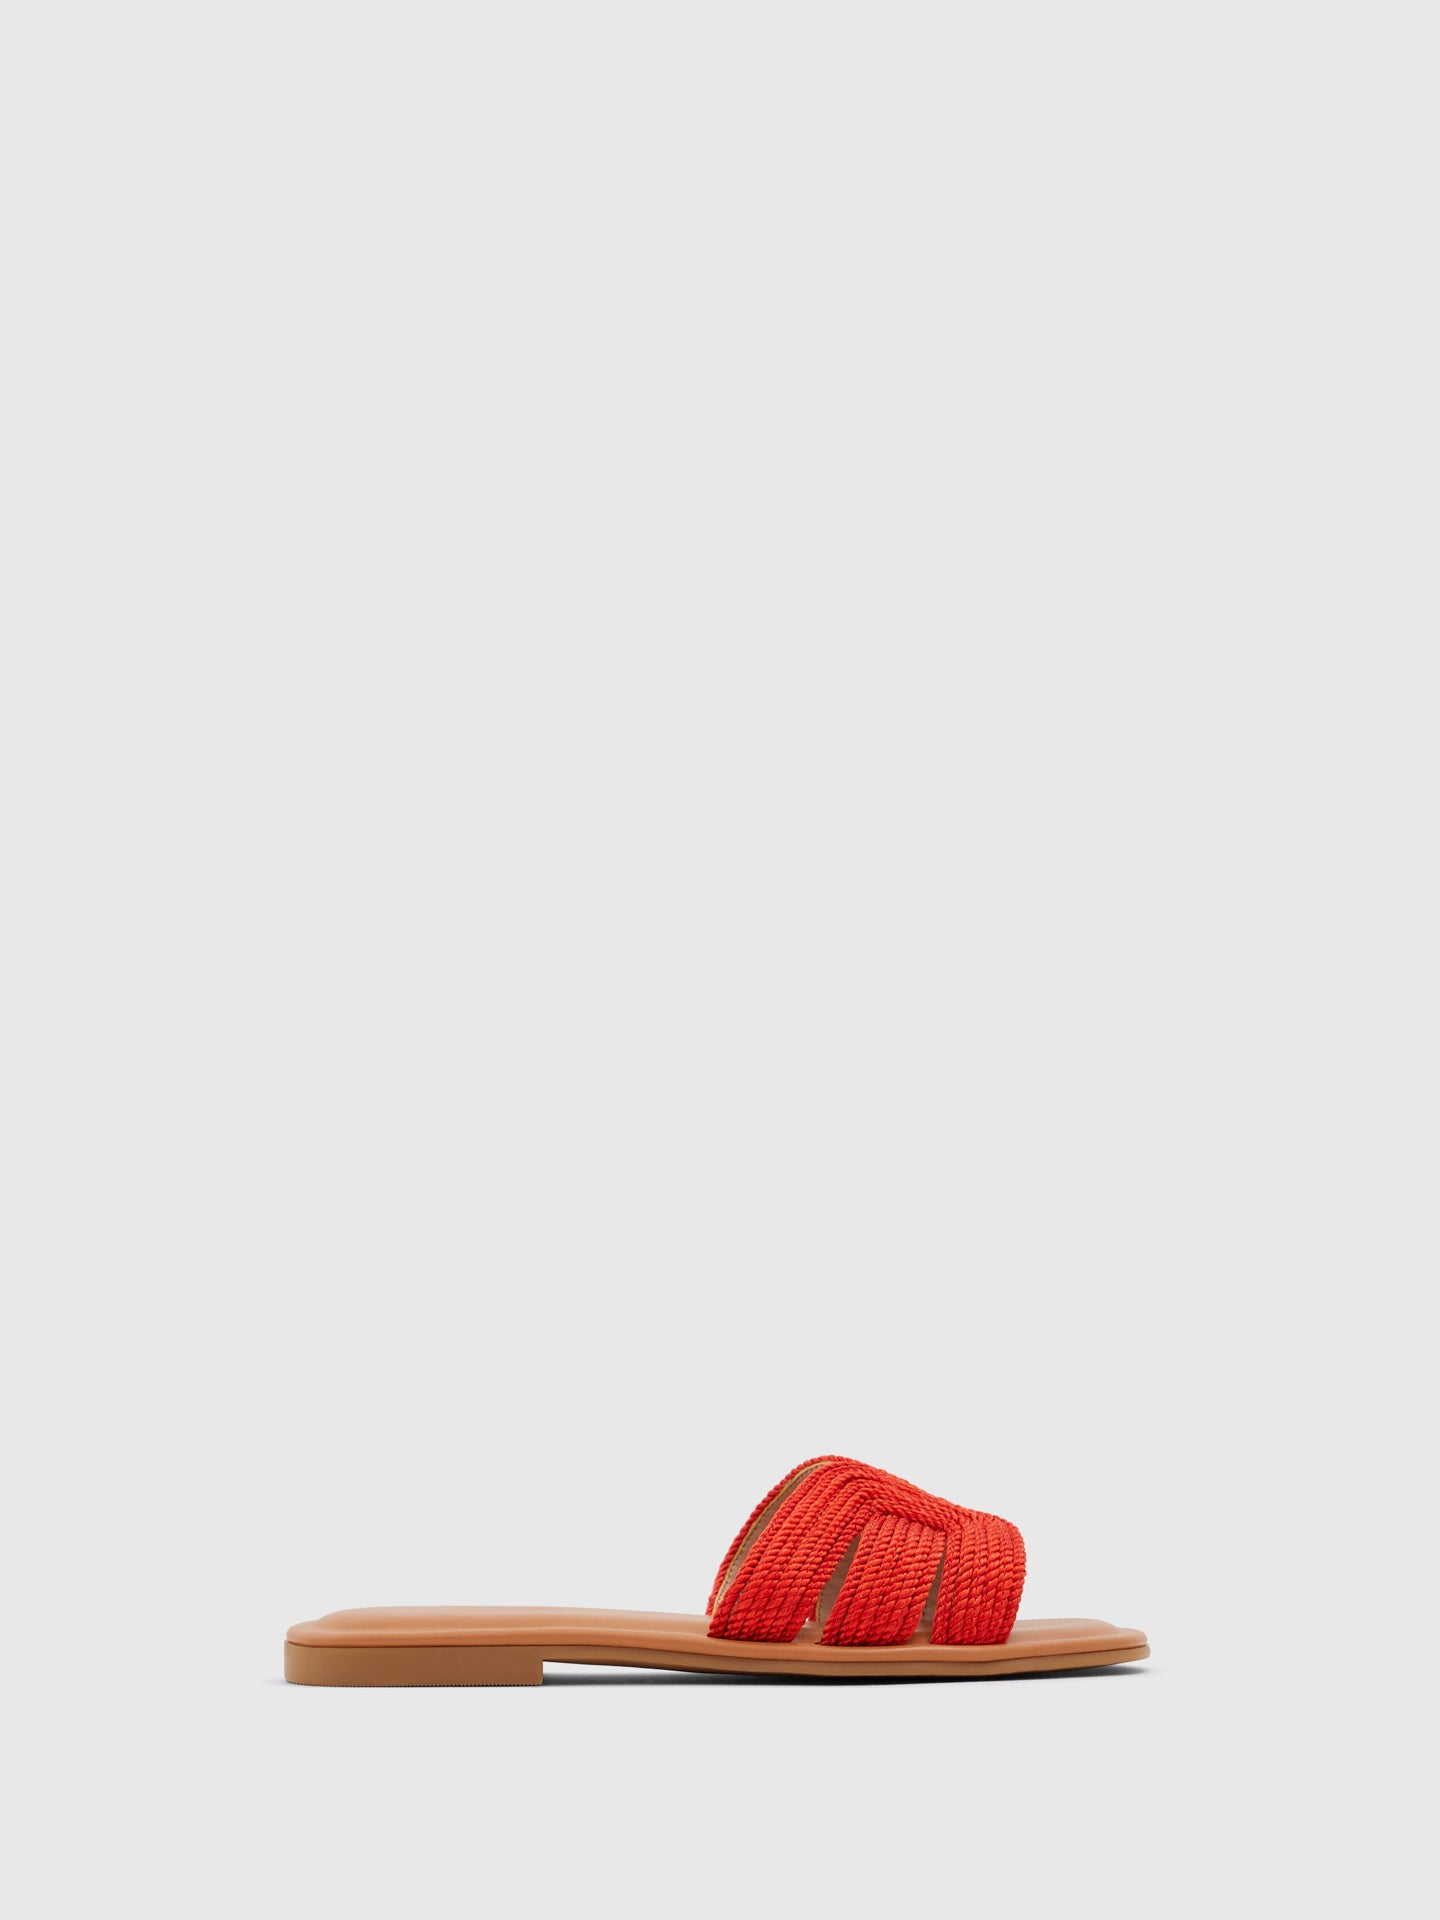 Aldo Red Open Toe Mules